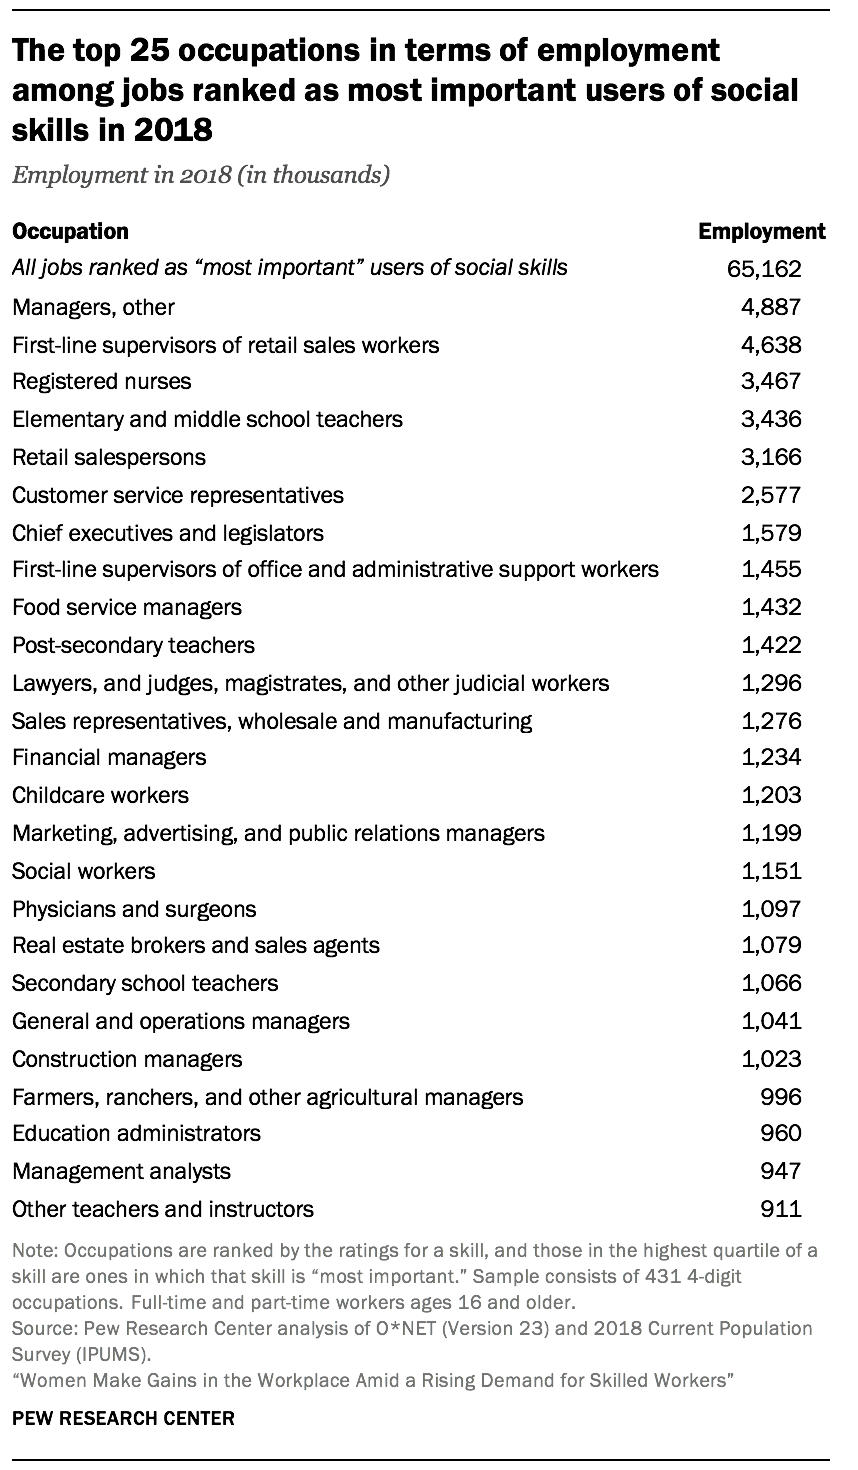 The top 25 occupations in terms of employment among jobs ranked as most important users of social skills in 2018